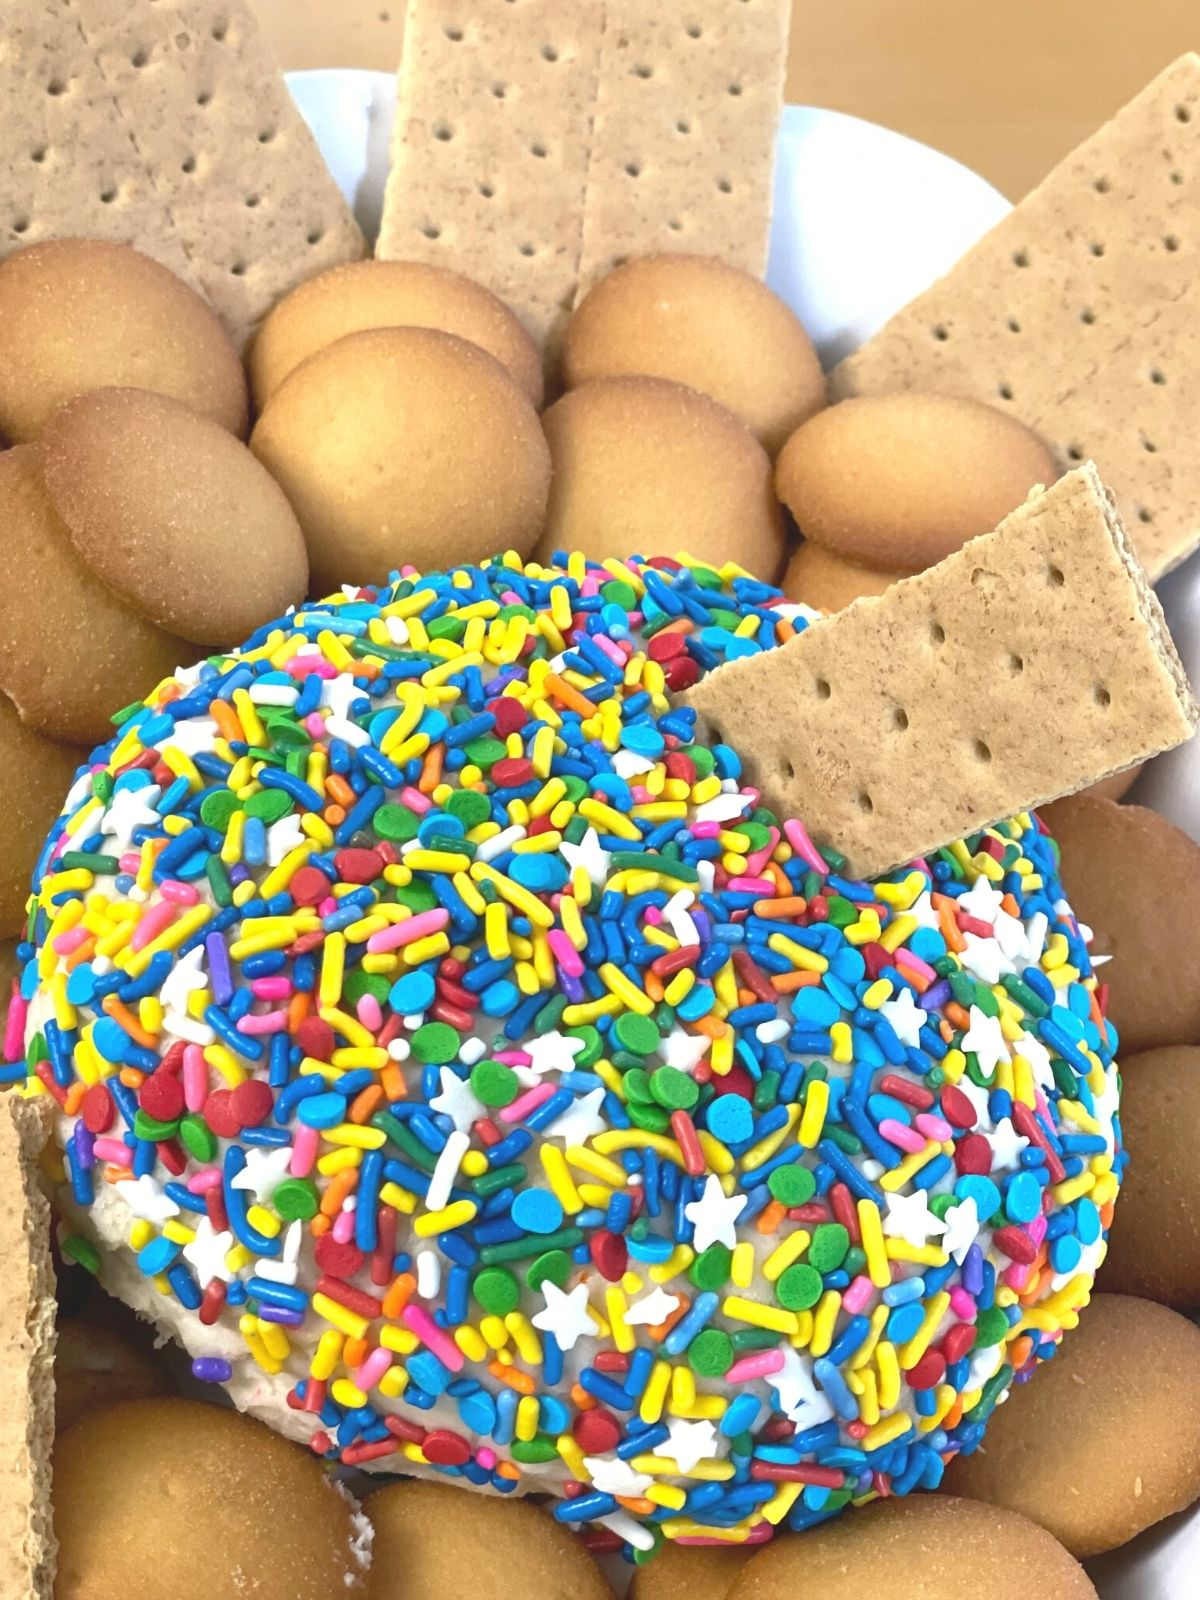 Finished funfetti dip cake mix dessert cheese ball with a graham cracker for dipping sticking out of it.